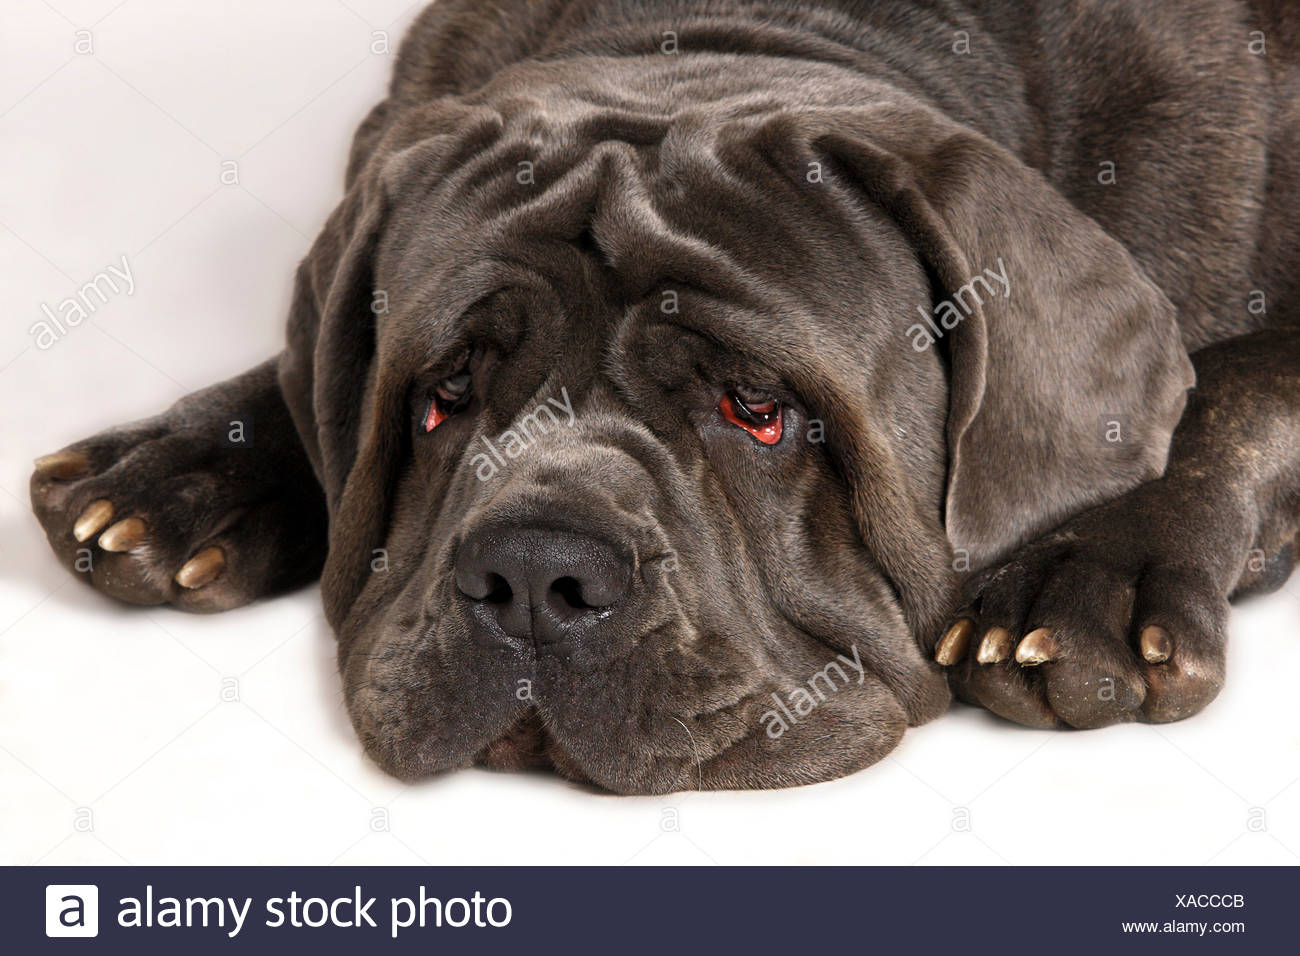 Wrinkles Face Dog Stock Photos & Wrinkles Face Dog Stock ...